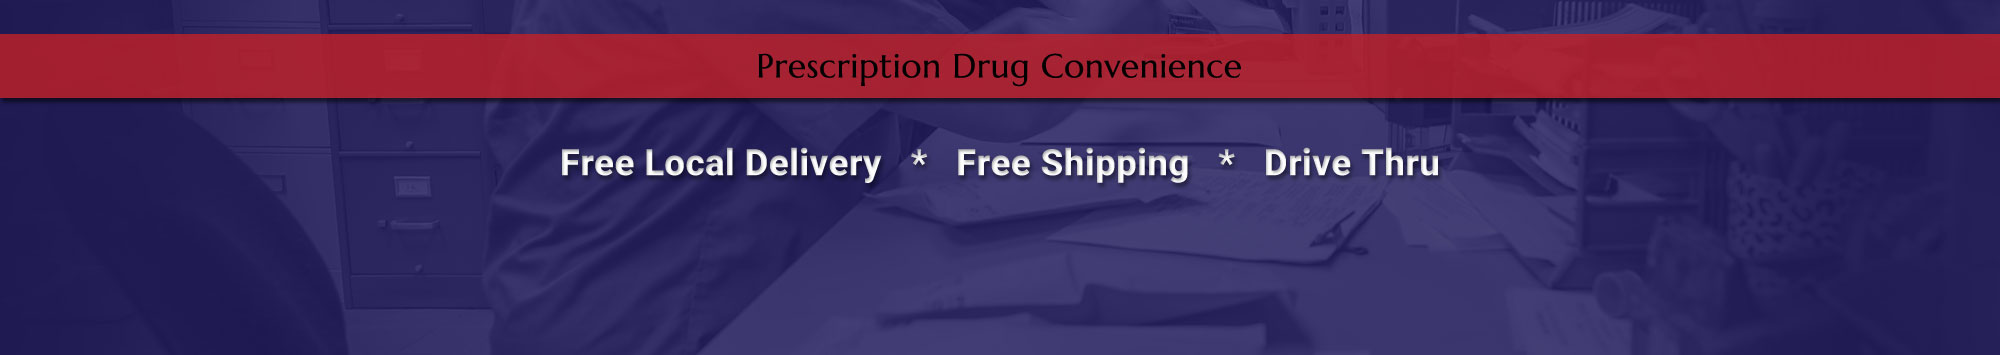 Prescription Drug Convenience from Omro Pharmacy - Free Delivery, Free Shipping, Drive Thru